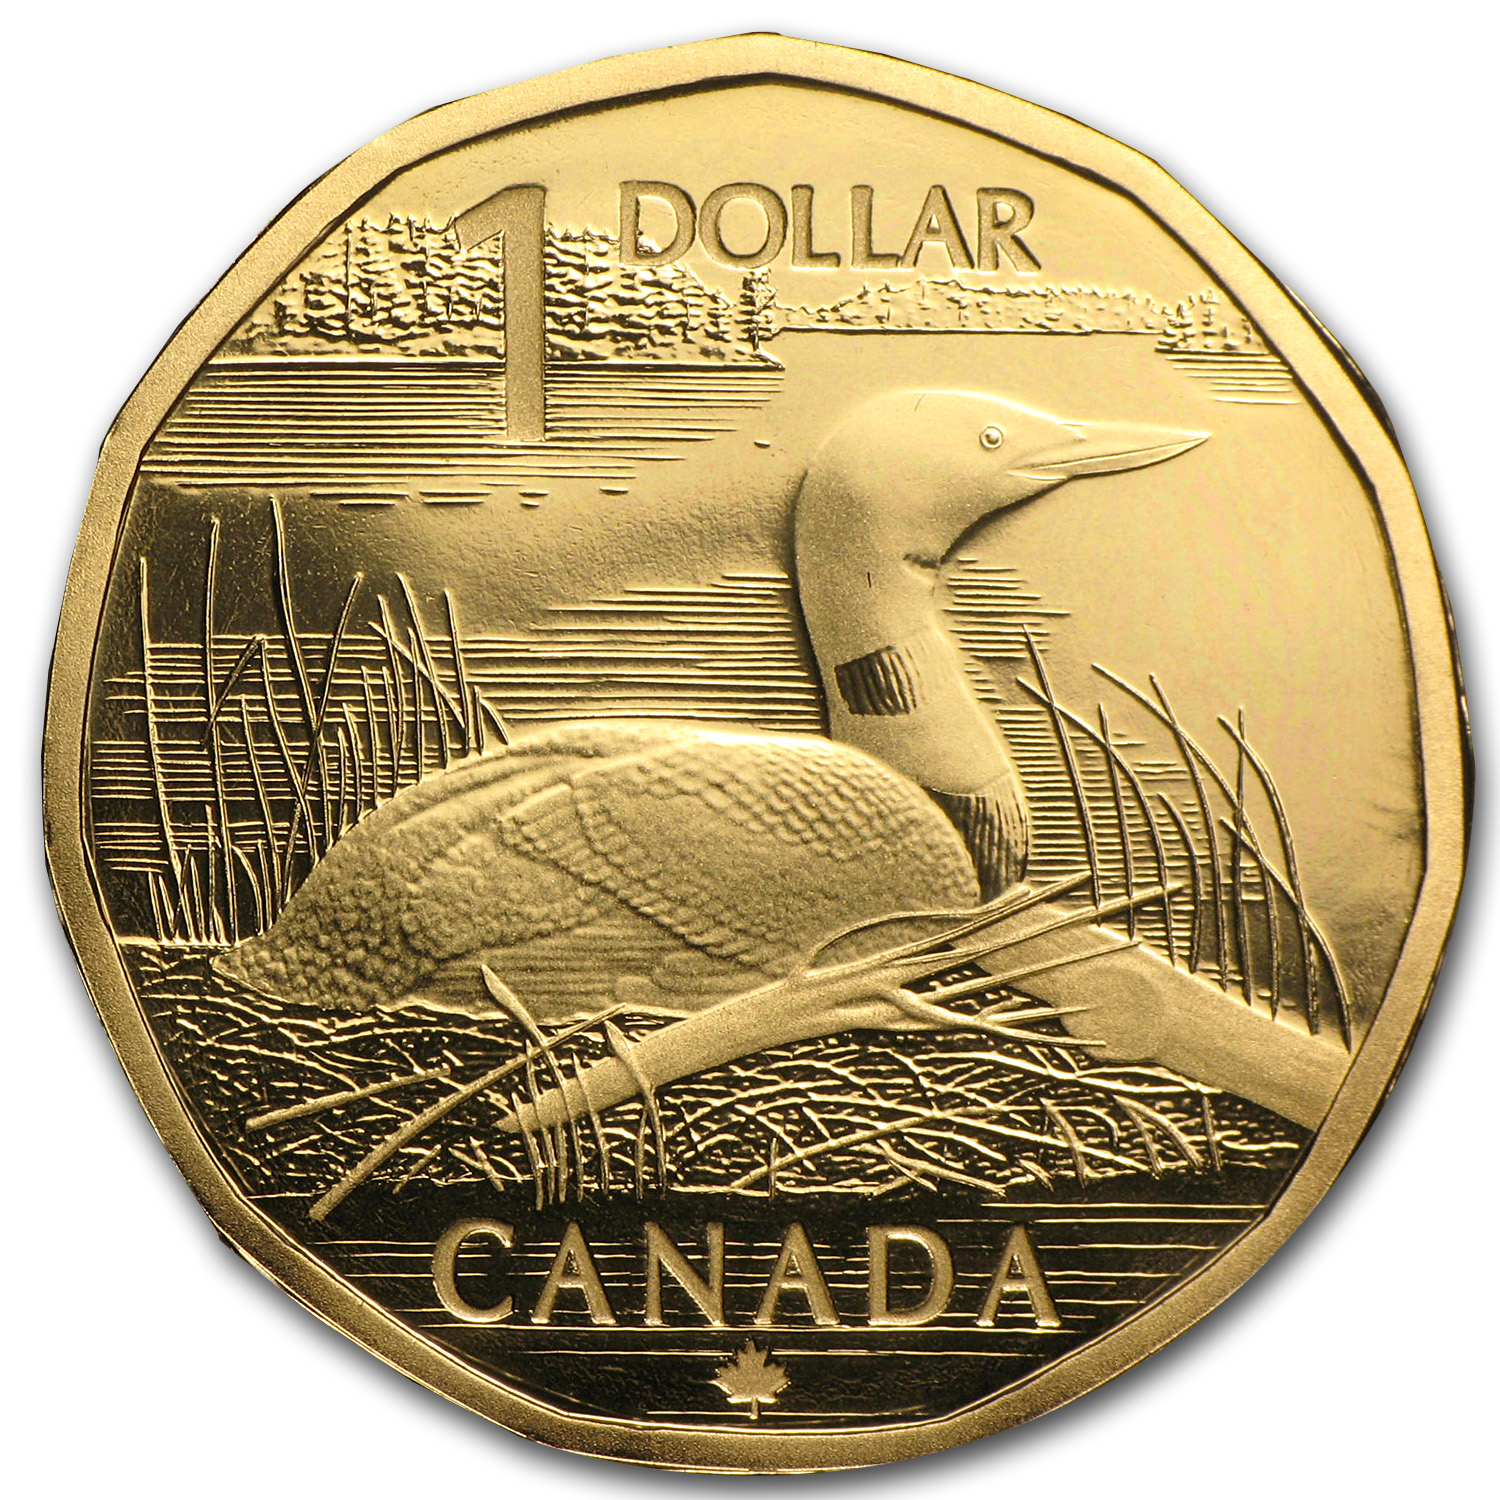 2004 Canadian $1 The Elusive Loon Coin & Stamp Set